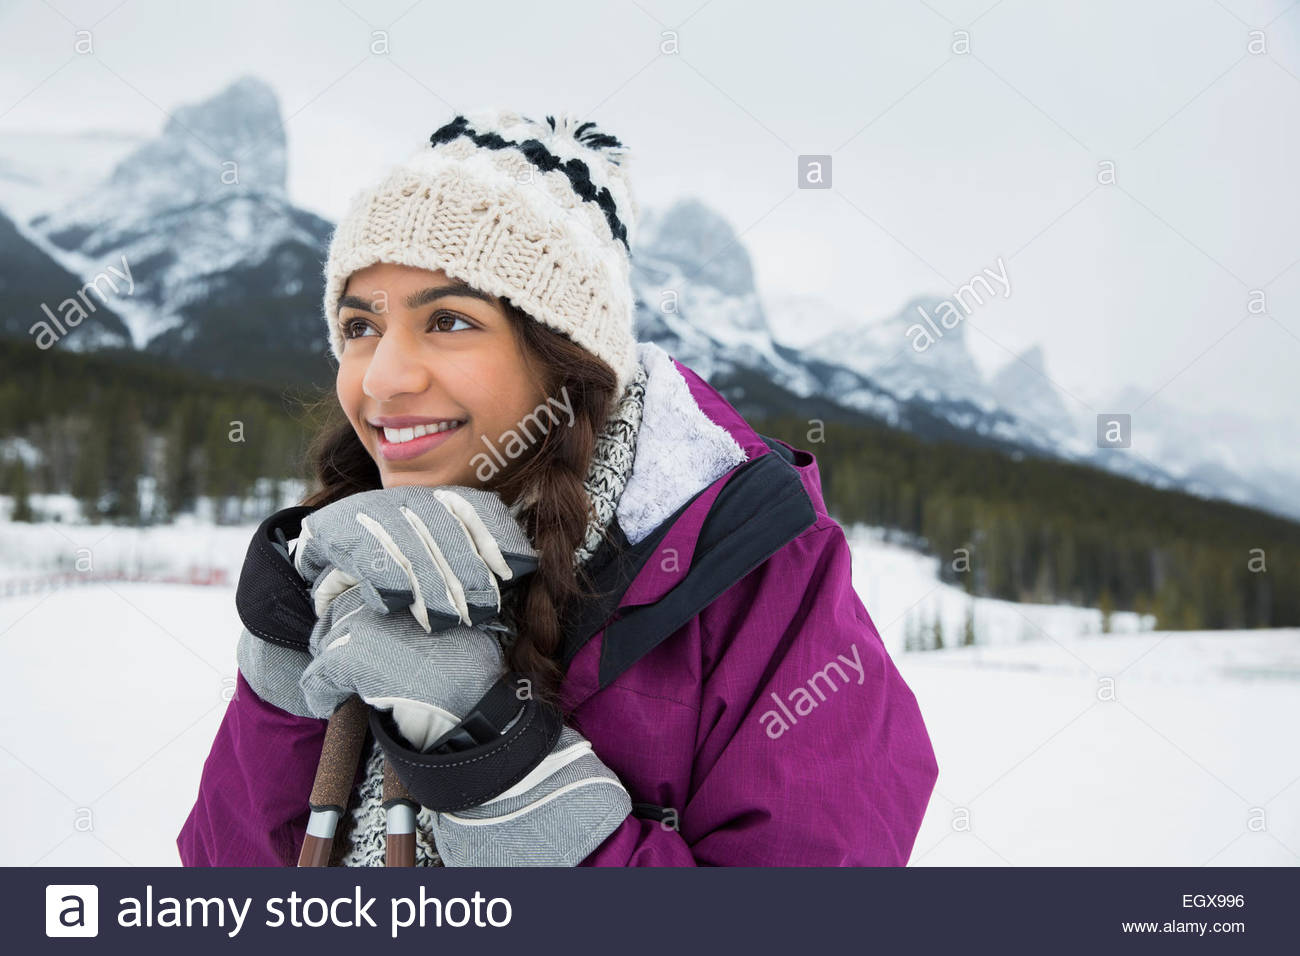 Smiling girl with ski poles below snowy mountains - Stock Image